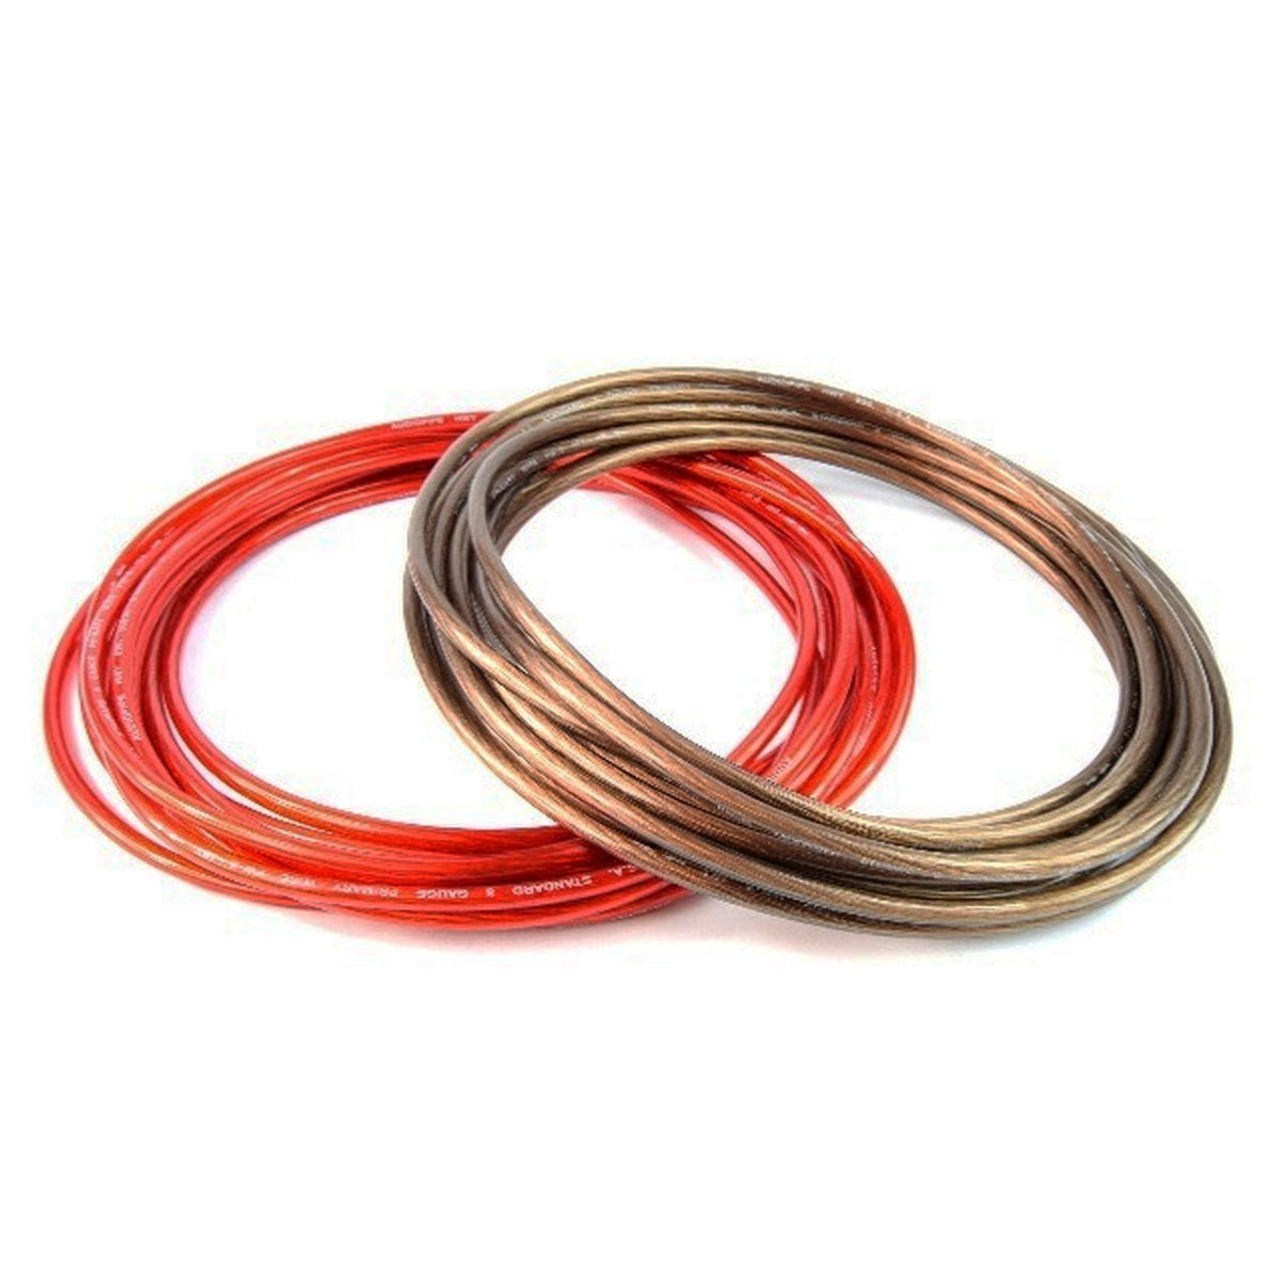 8 gauge 25ft black 25ft red power ground wire for car audio amplifier systems [ 1280 x 1280 Pixel ]